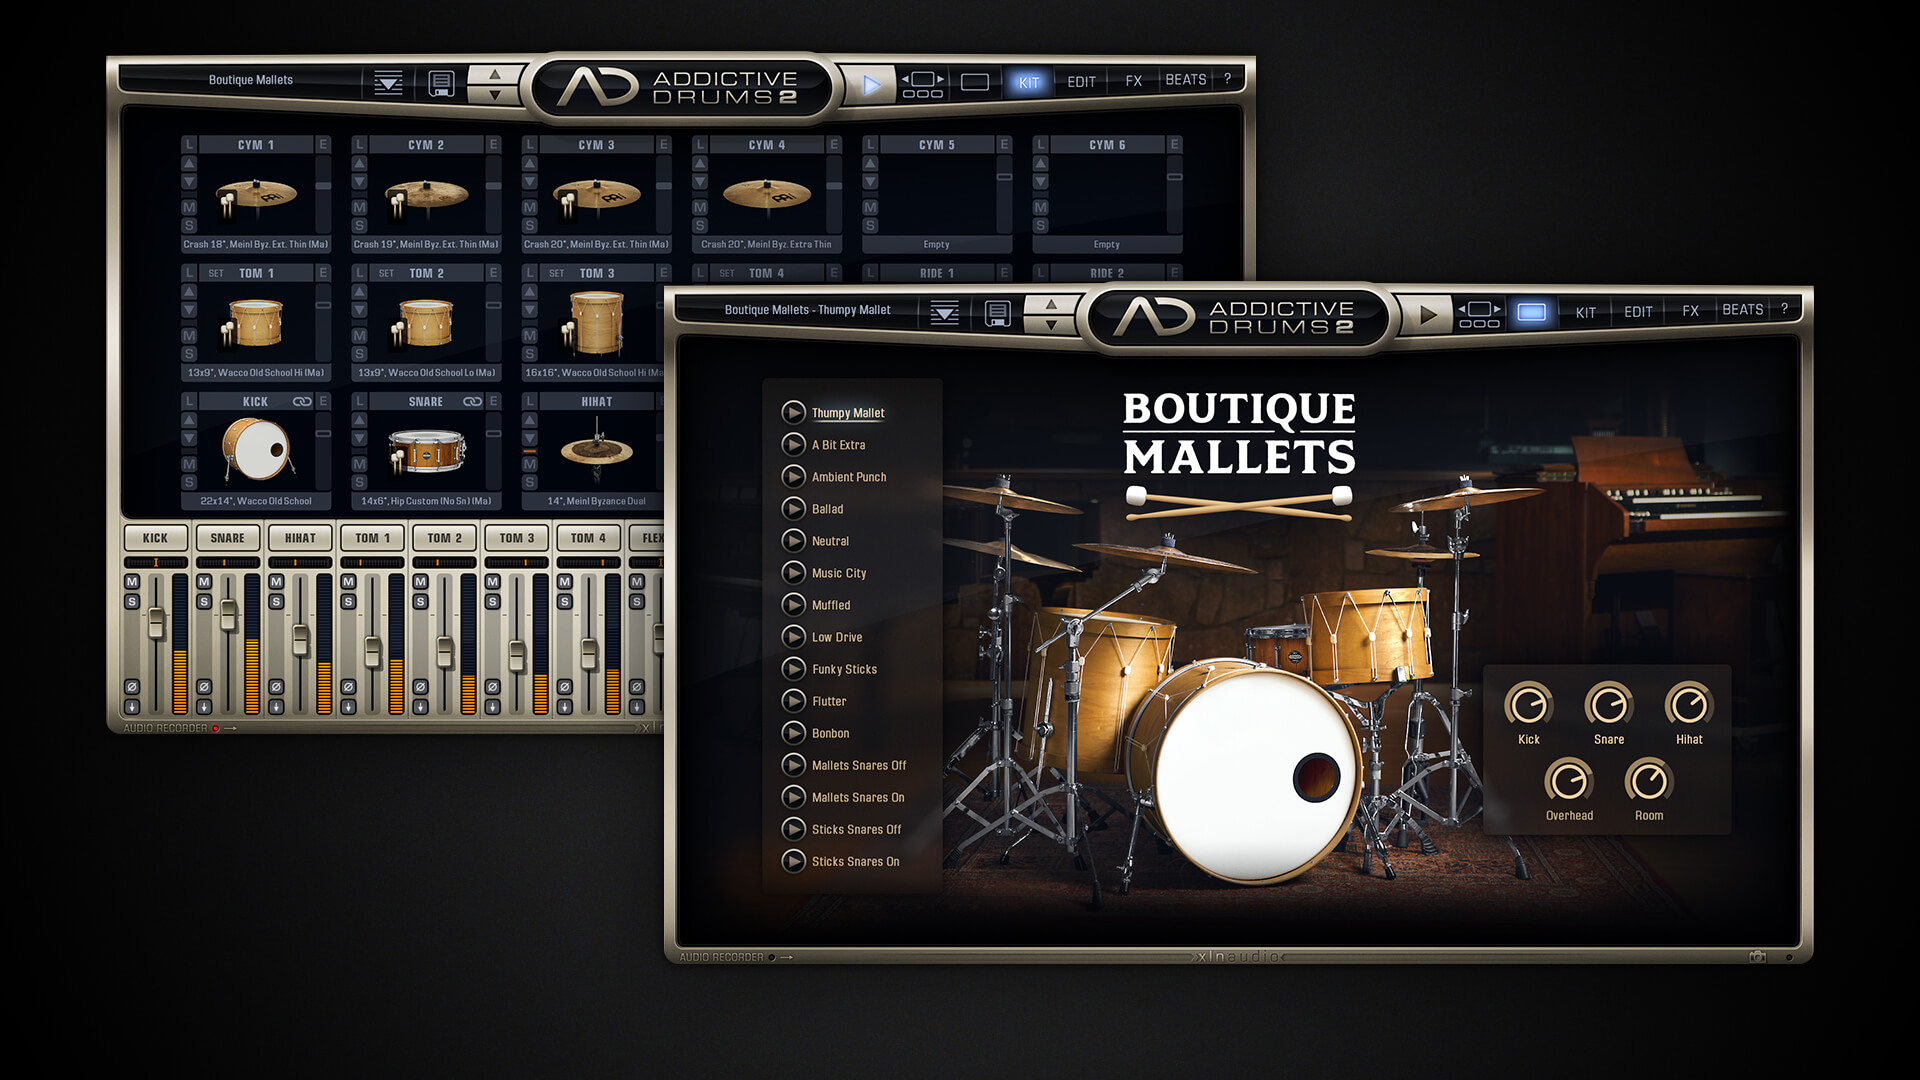 Boutique Mallets